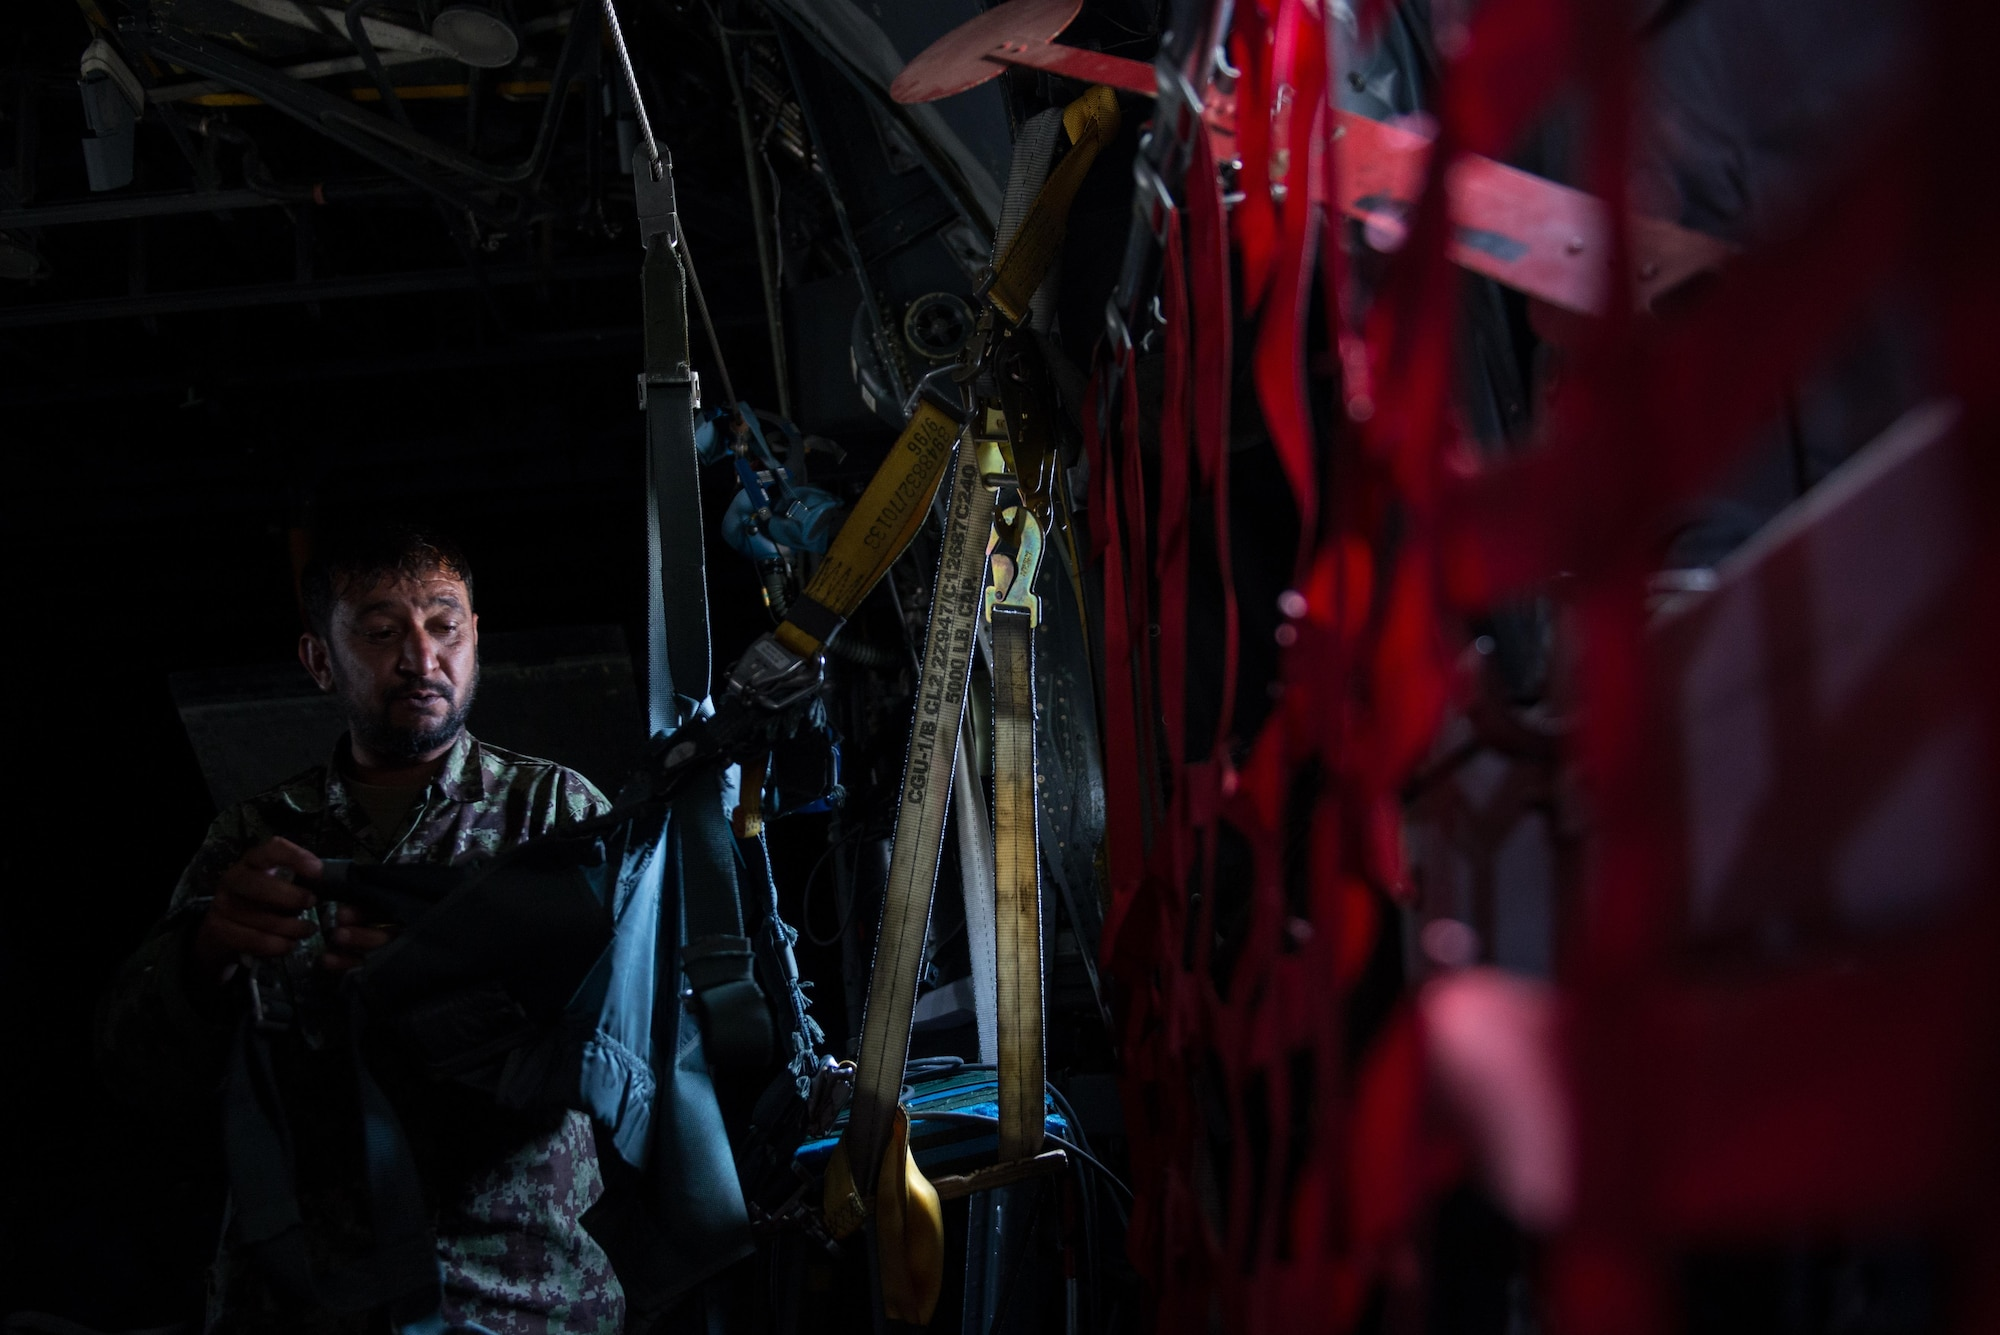 An Afghan airman inspects aircrew flight equipment aboard an Afghan C-130H Hercules aircraft during a training session with U.S. Airmen from the 455th Air Expeditionary Wing at Hamid Karzai International Airport, Kabul, Afghanistan, Aug. 29, 2015. Airmen with the 455th AEW visited Forward Operating Base Oqab and Hamid Karzai International Airport to share their aircrew flight equipment knowledge with their Afghan counterparts and also assist Train, Advice, Assist Command-Air with keeping Coalition AFE equipment current. (U.S. Air Force photo by Tech. Sgt. Joseph Swafford/Released)